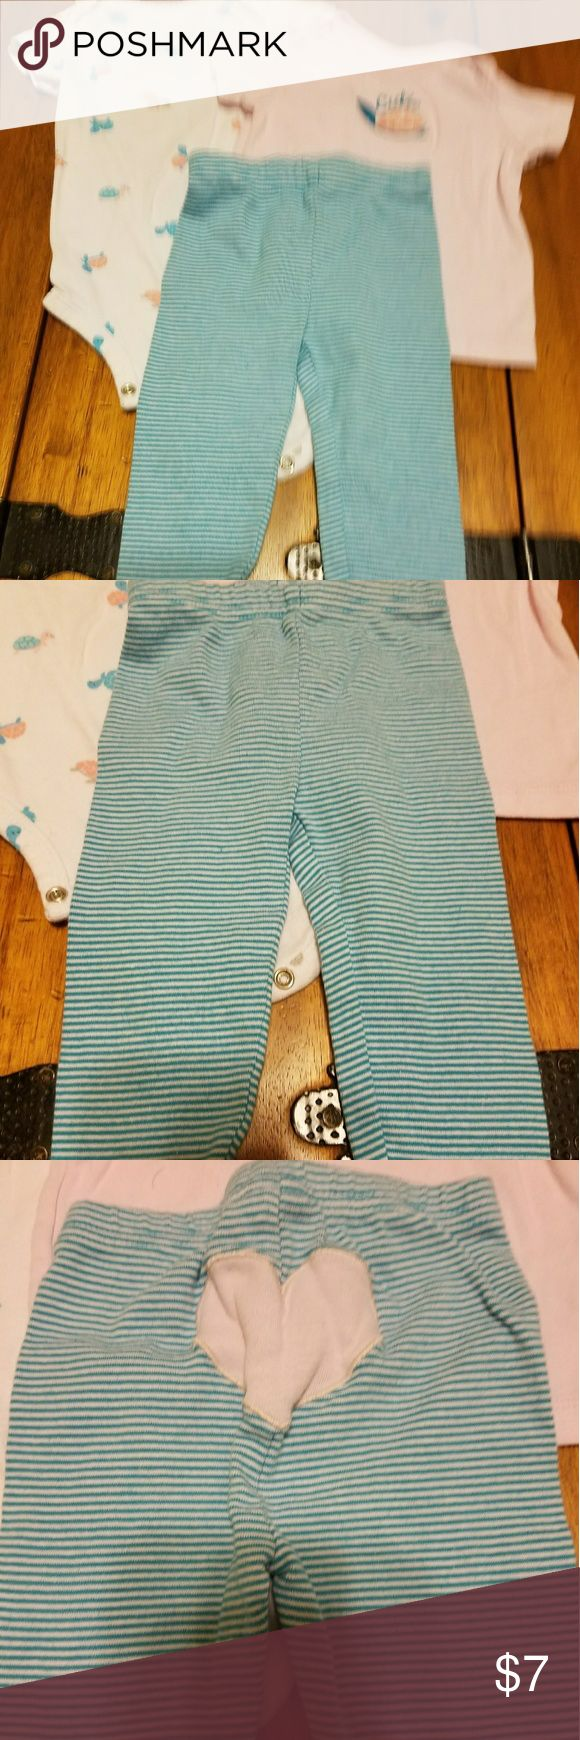 3-Piece Outfit Set 6-9m, Pink Blue White, Carter's Three matching pieces by Child of Mine By Carter's.  6-9 months Great condition! Pink short sleeve top, white short sleeve onsie with turtles throughout, and blue white striped pants. Carter's Matching Sets